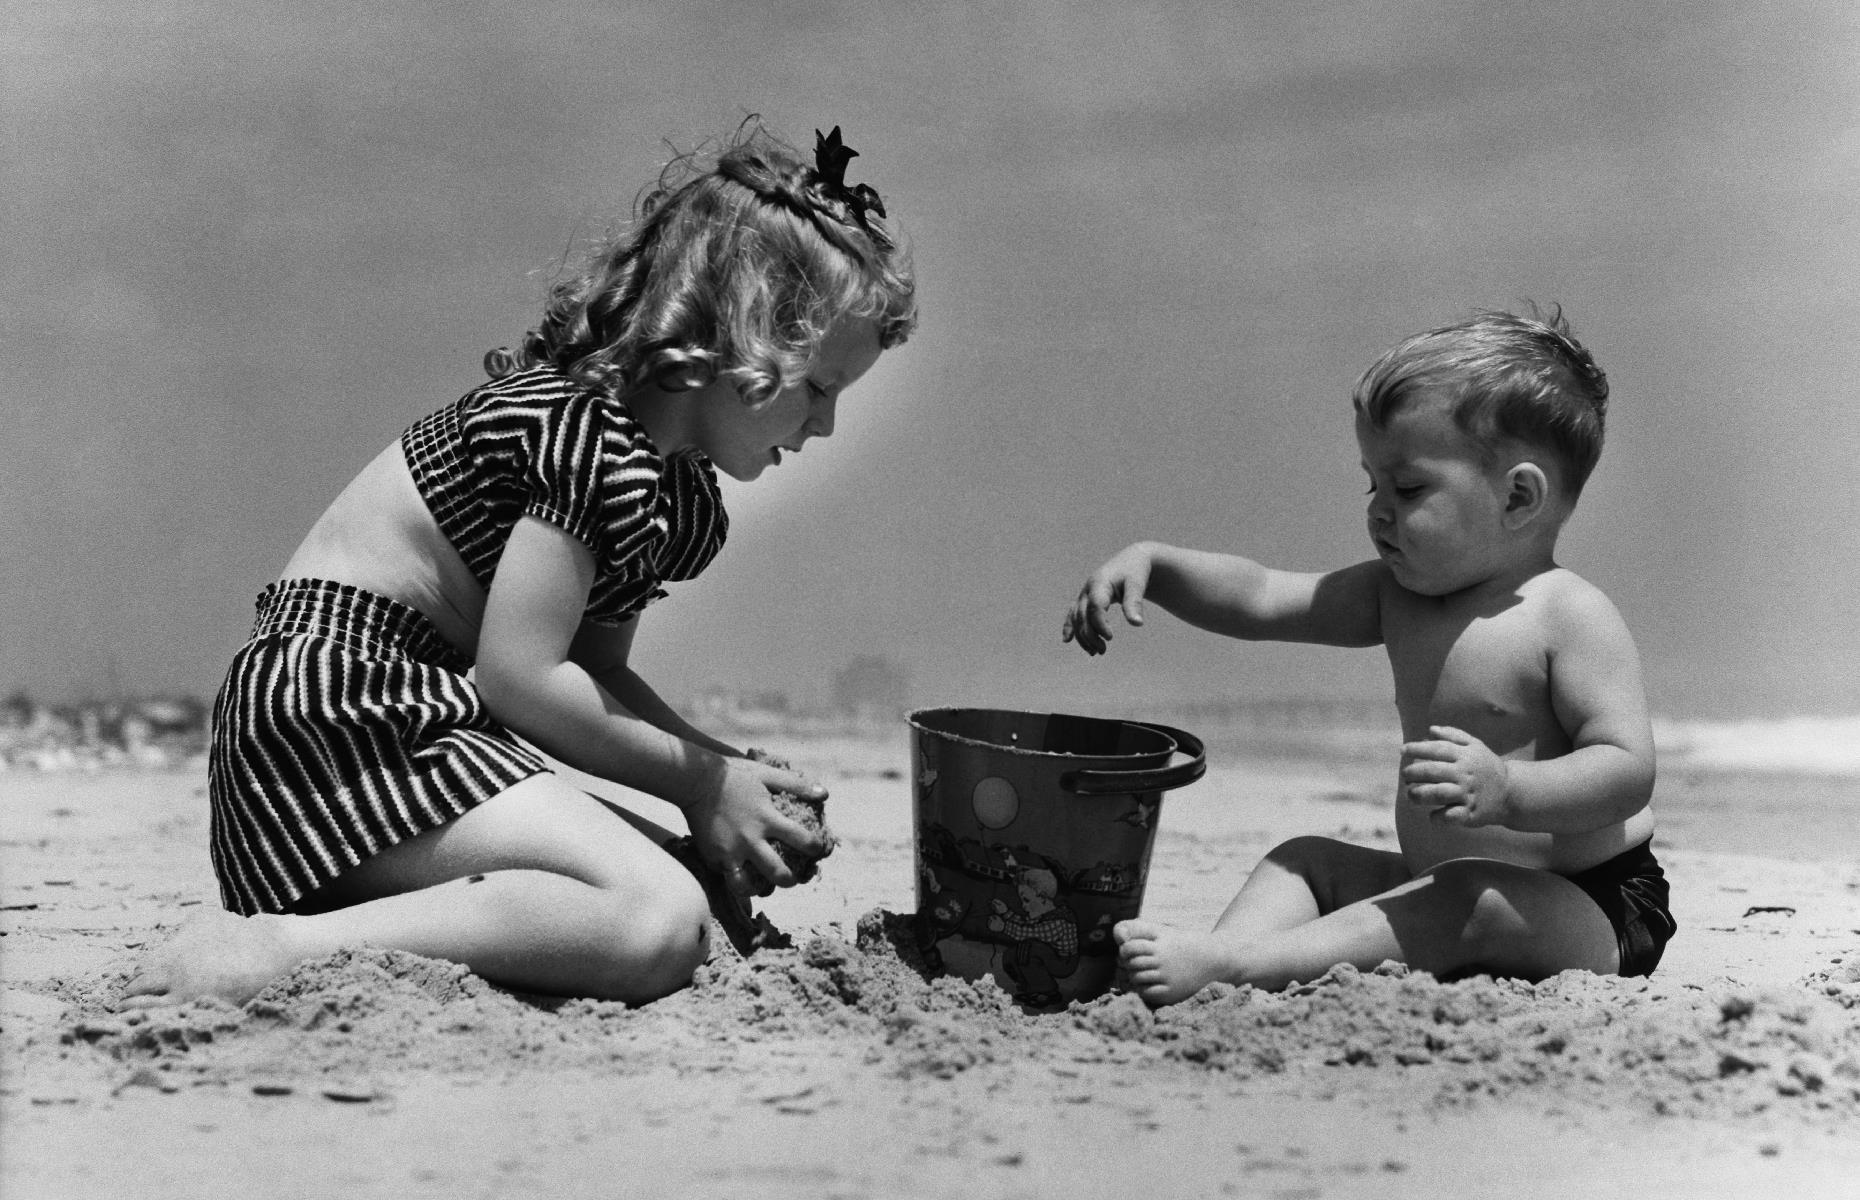 Slide 5 of 38: Not all destinations had as many bells and whistles, though. Where there weren't rides, puppet shows and cotton candy stands, little beach-goers would make do with a bucket and spade. Here a young brother and sister build a sandcastle on a beach in Florida.